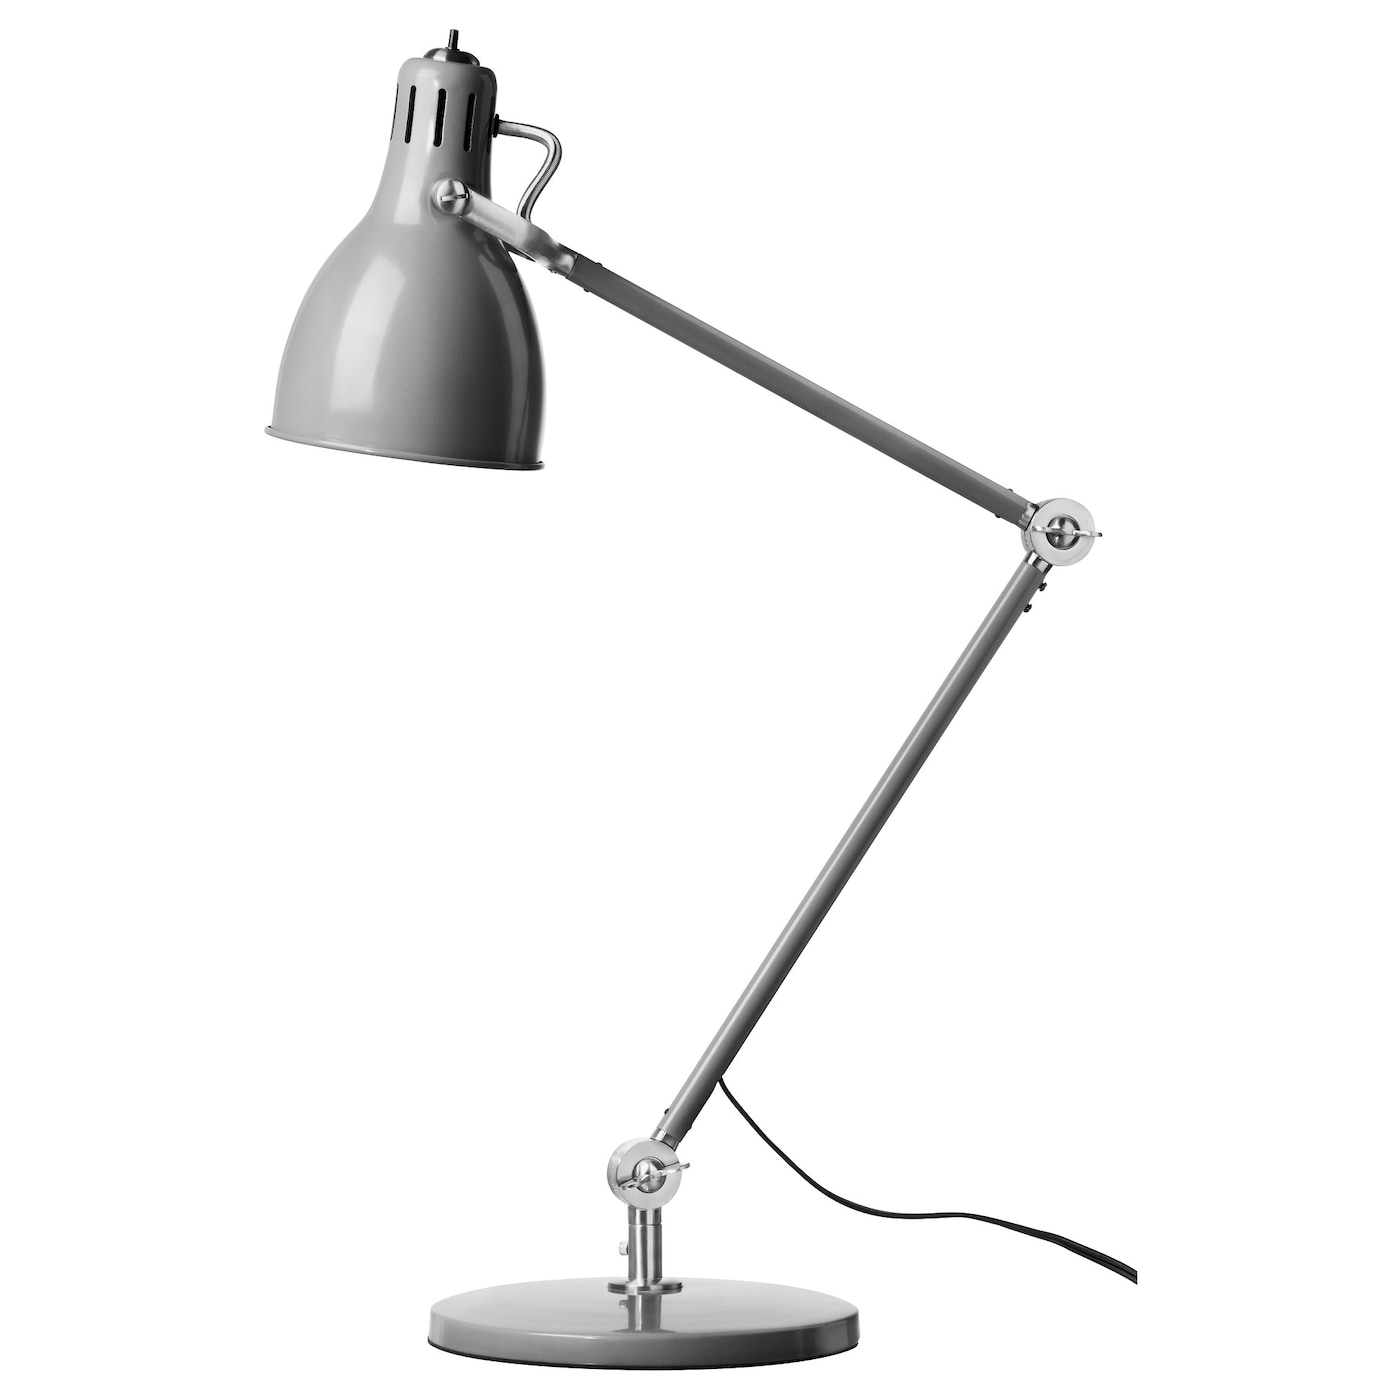 ikea desk lamps led desk lamps worklights. Black Bedroom Furniture Sets. Home Design Ideas